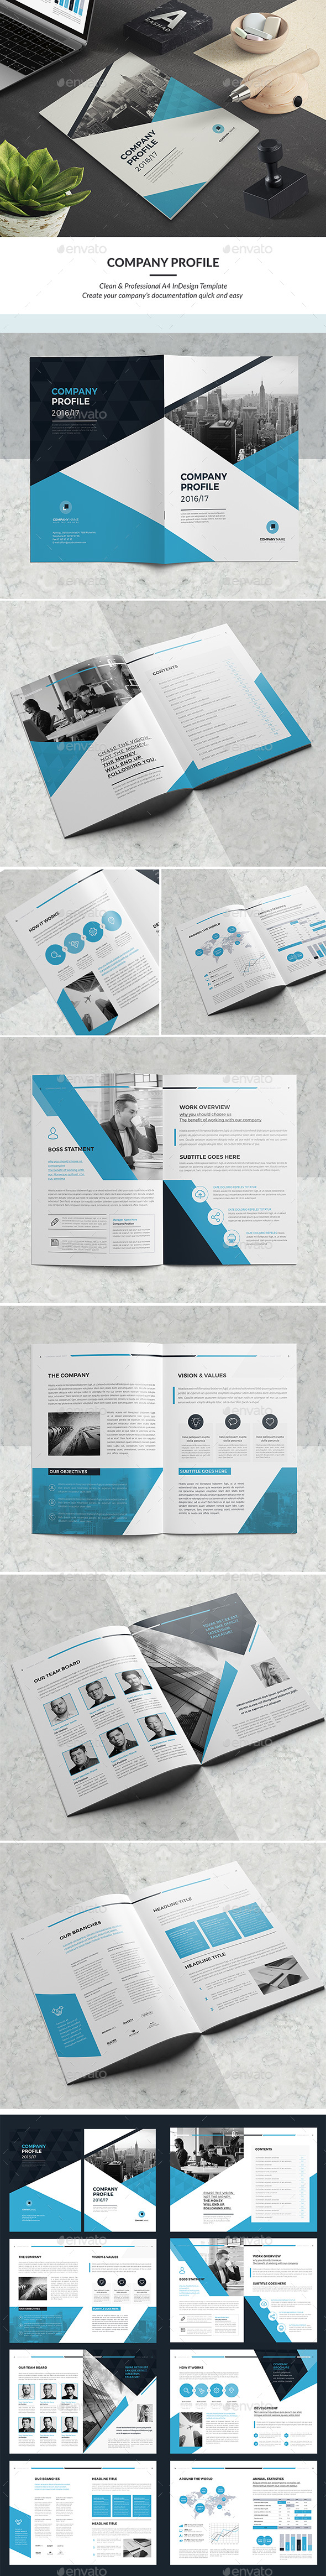 Company Profile Brochure Template InDesign INDD - 16 Pages | Katalog ...